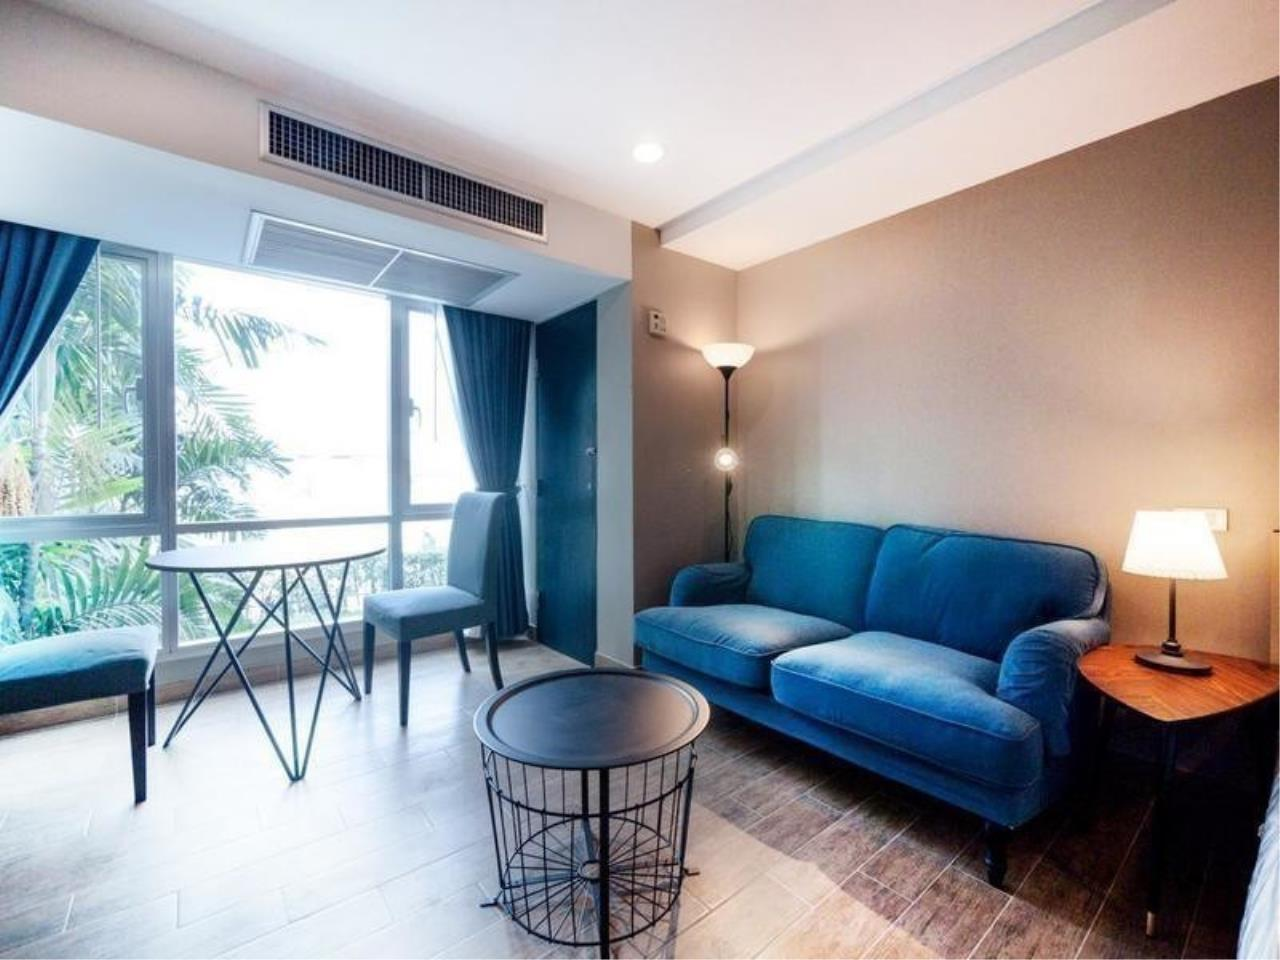 Quality Life Property Agency's  At The Trendy Condominium , Many Units Available Here***  For Rent **** 1